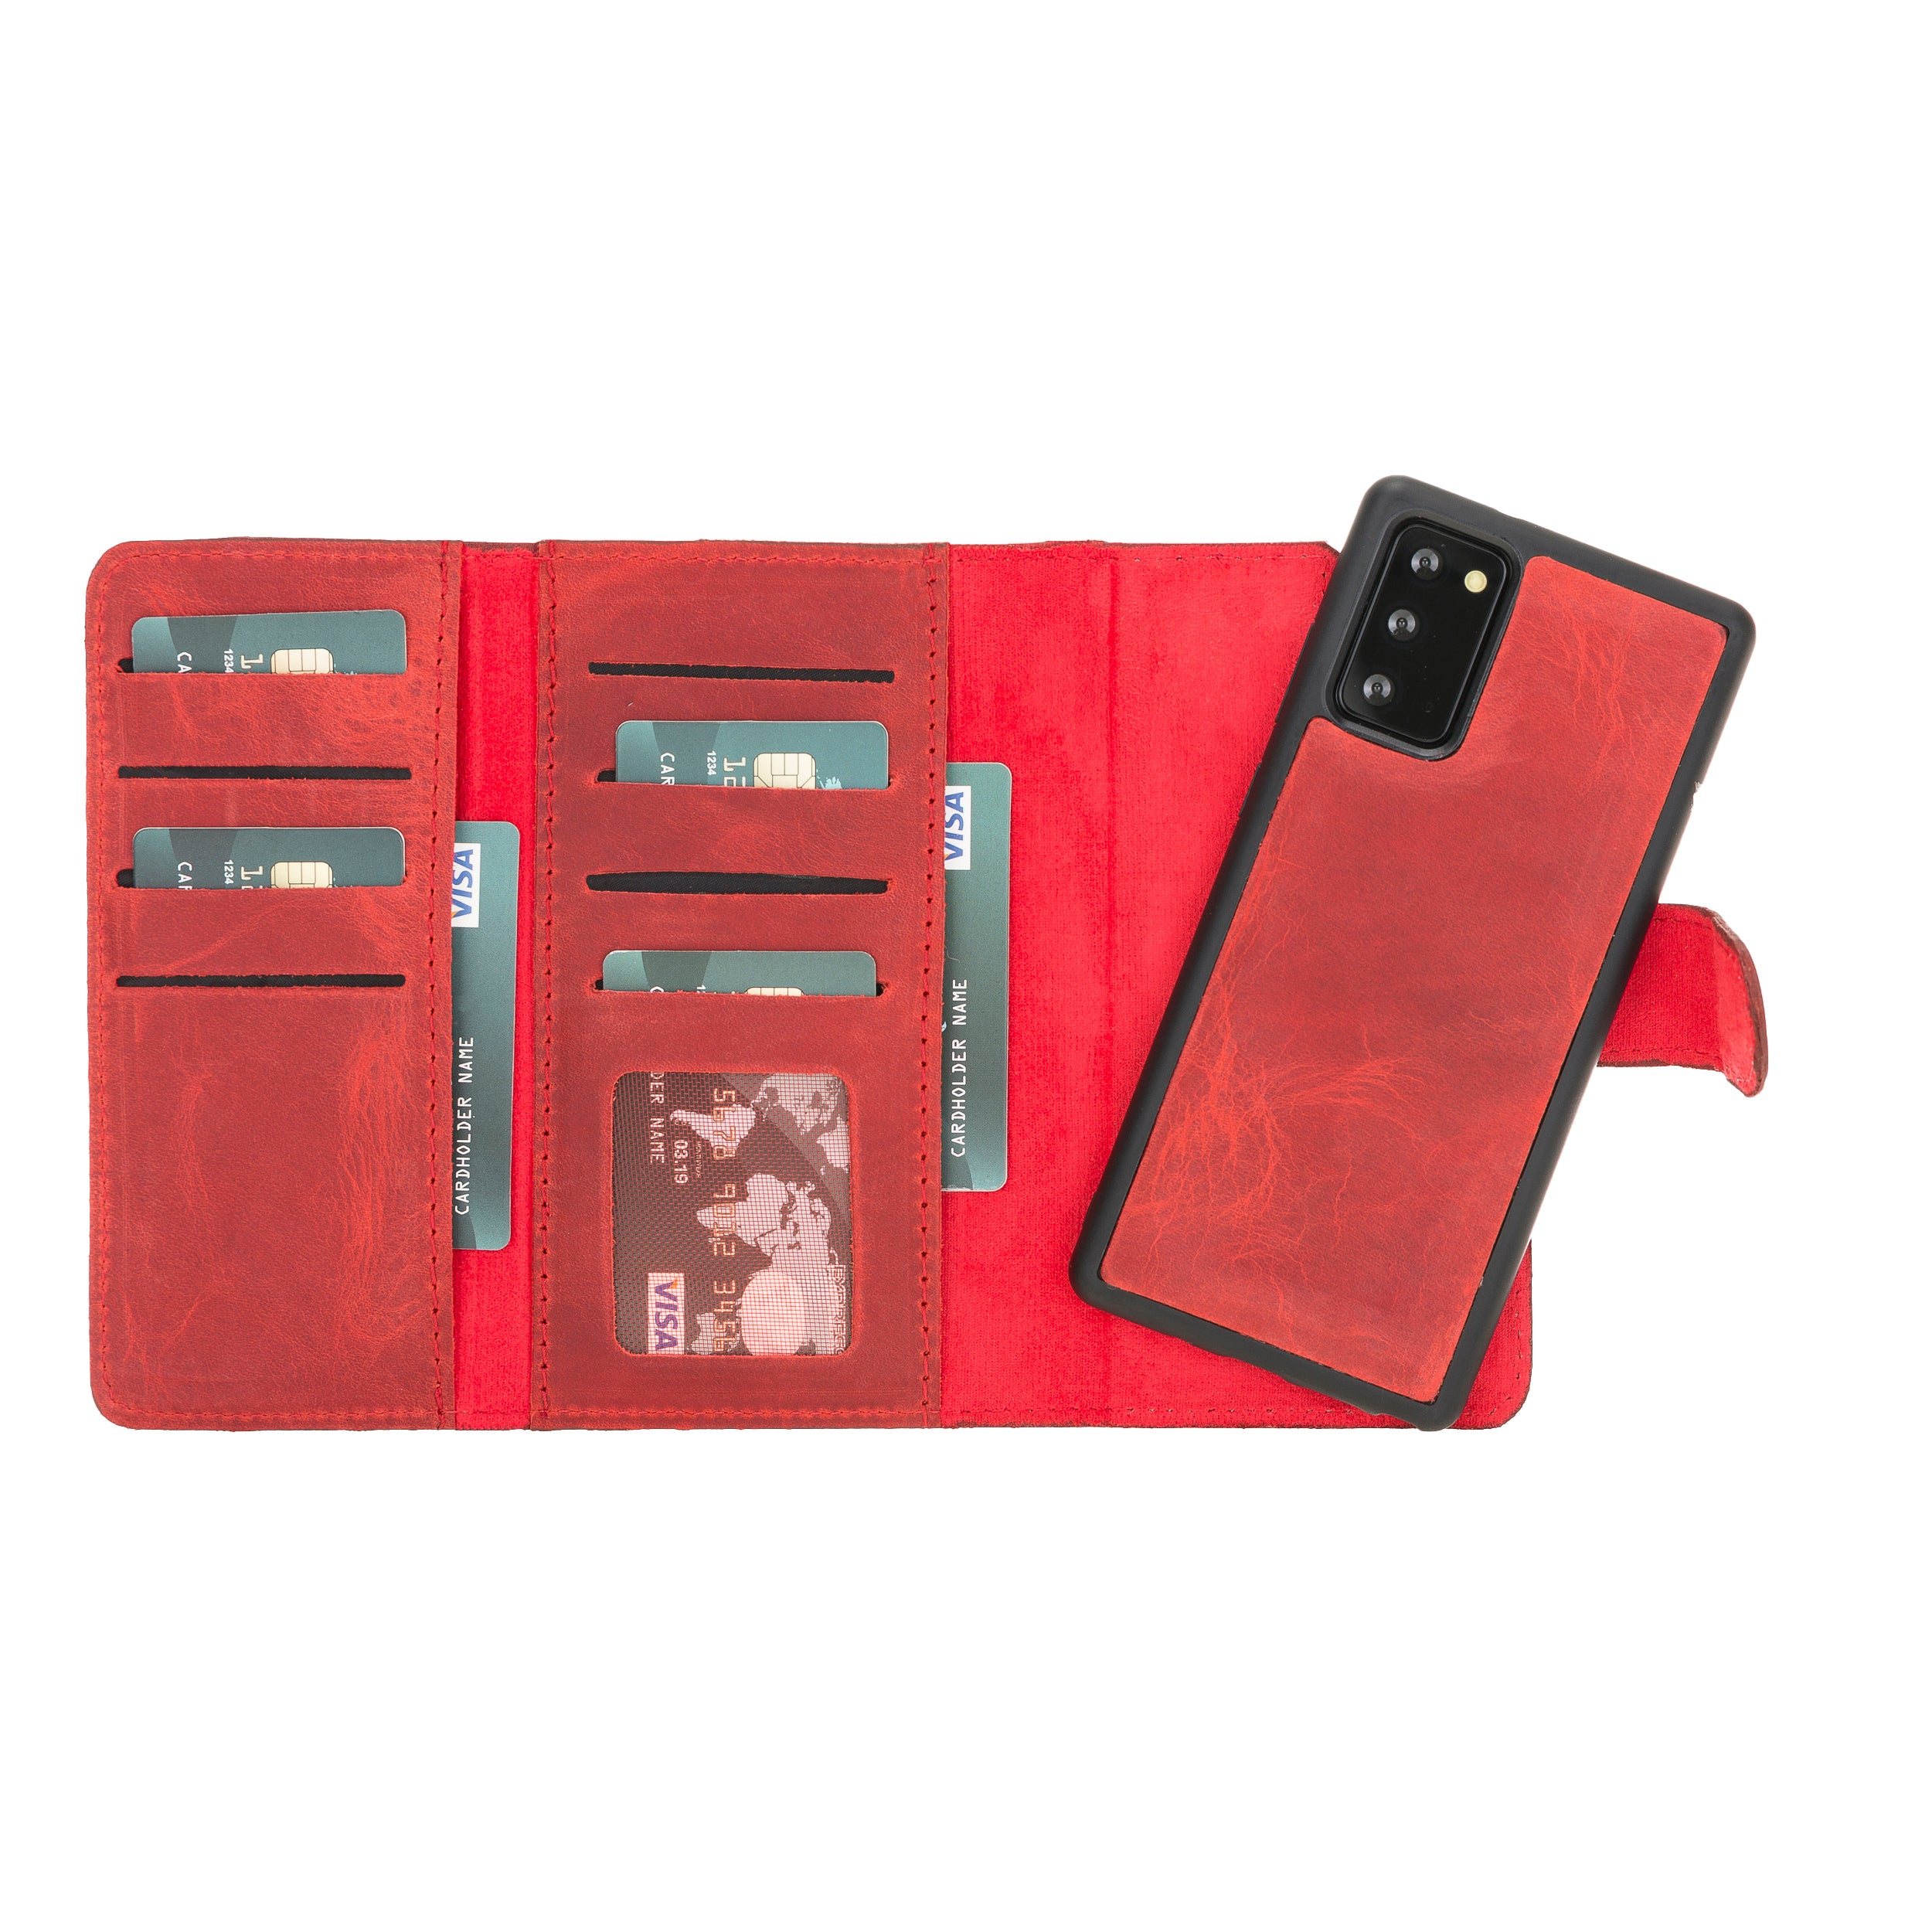 "Santa Magnetic Detachable Leather Wallet Case for Samsung Galaxy Note 20 / Note 20 5G (6.7"") - RED"